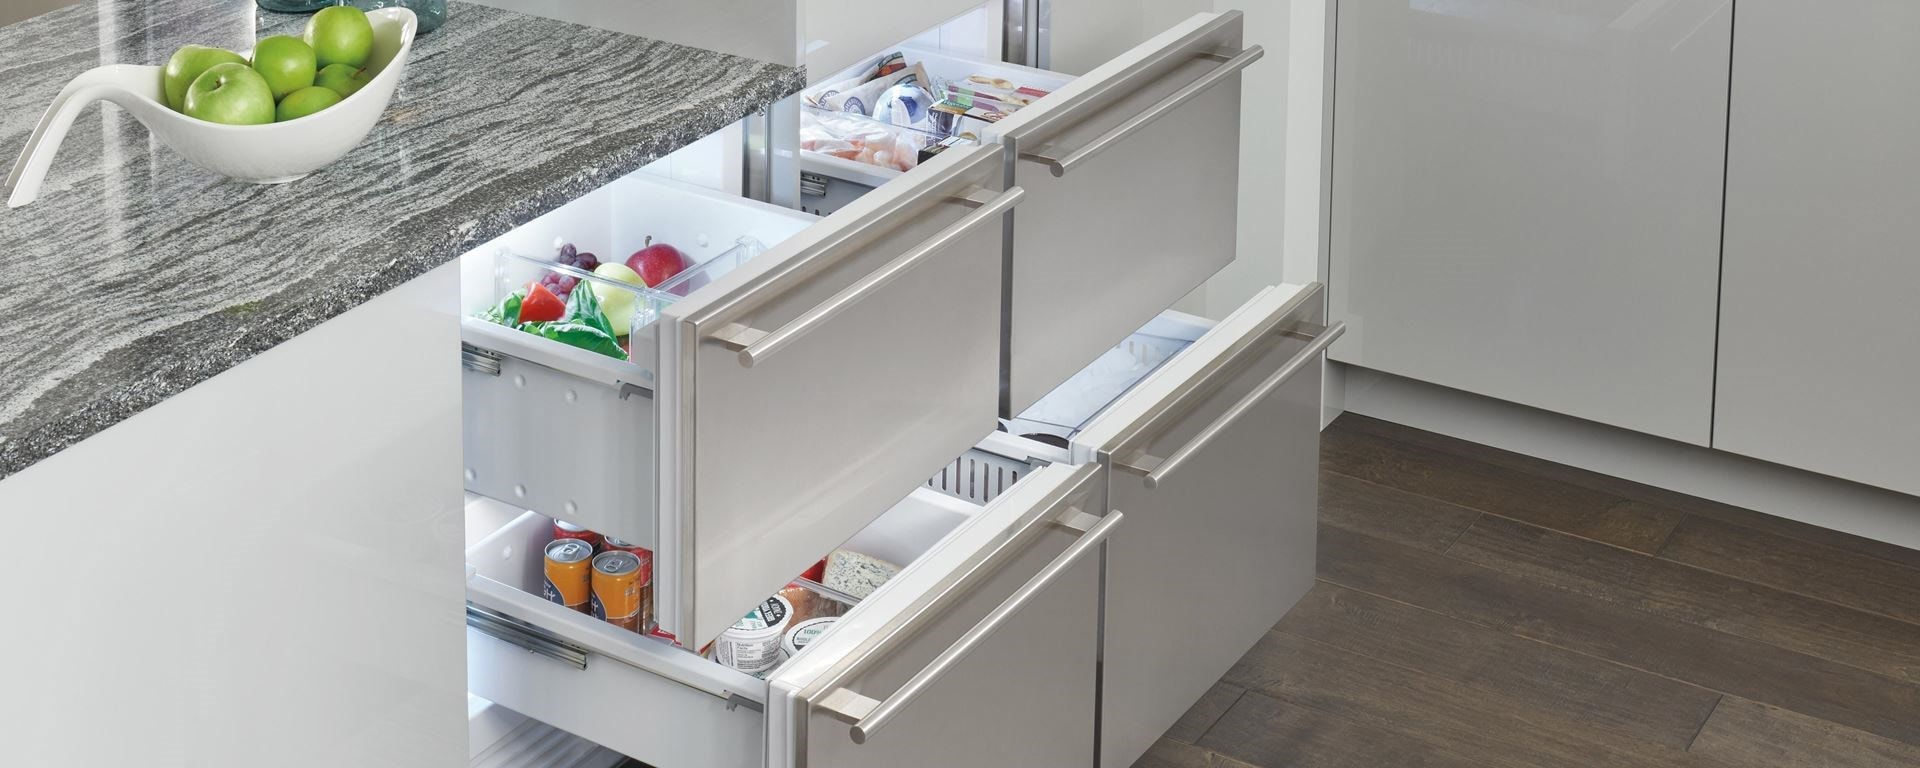 Sub-Zero refrigerator drawers and freezer drawers with custom panels